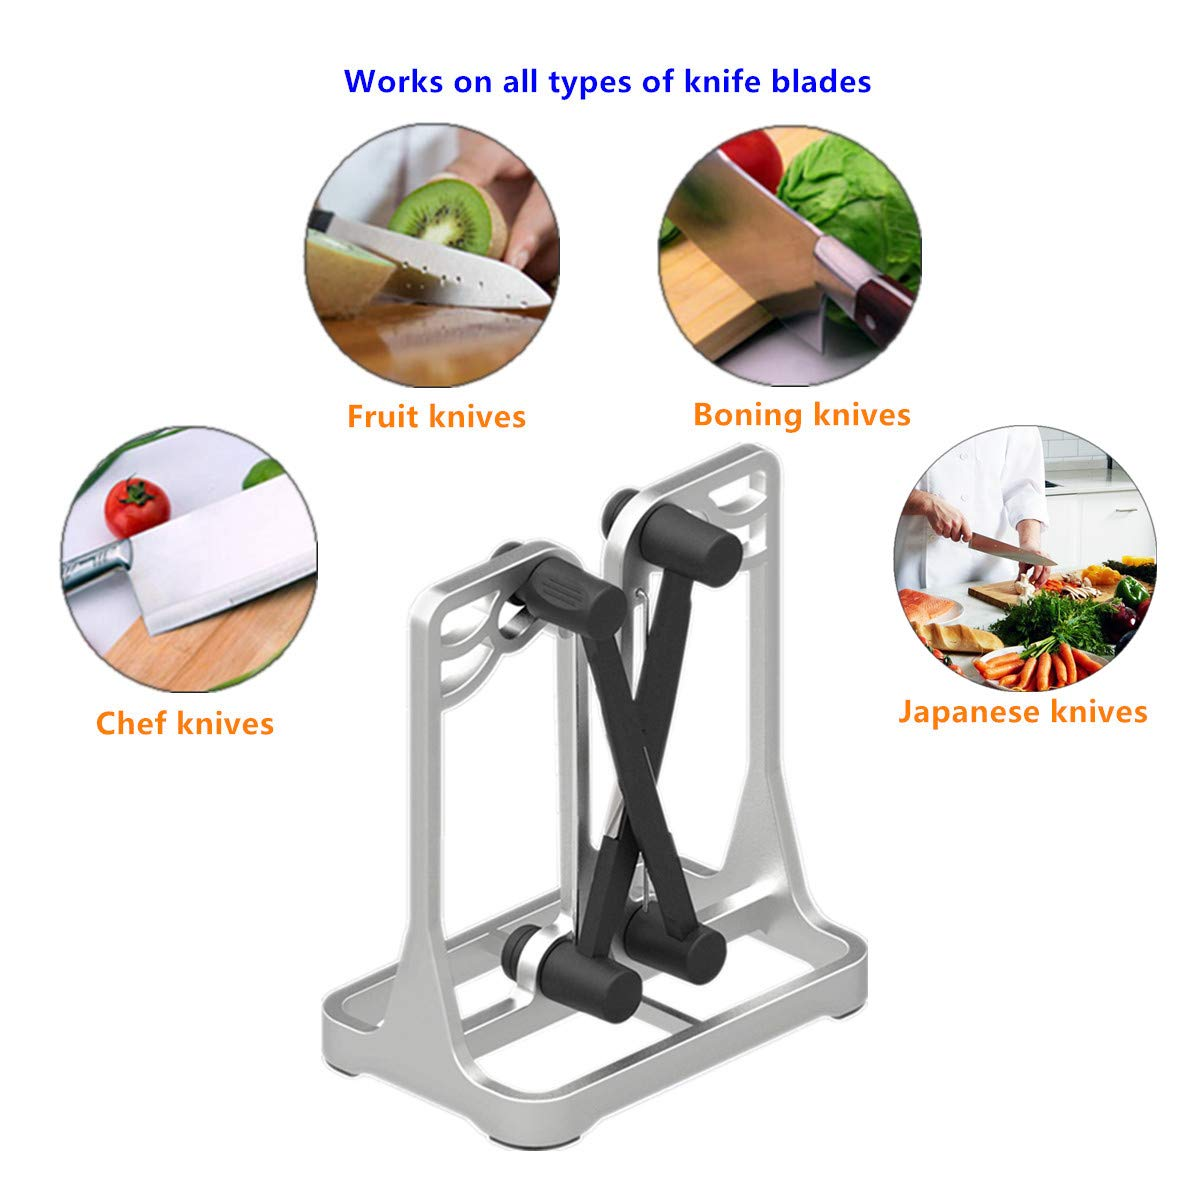 Knife Sharpener As Seen On TV - Upgrade Made of Full Metal Bracket - Sharpens & Hones & Polishes Beveled Blades, Standard Blades, Chef's Knives - Safe & Easy to Use Kitchen Tools by Ehoyal by Ehoyal (Image #4)